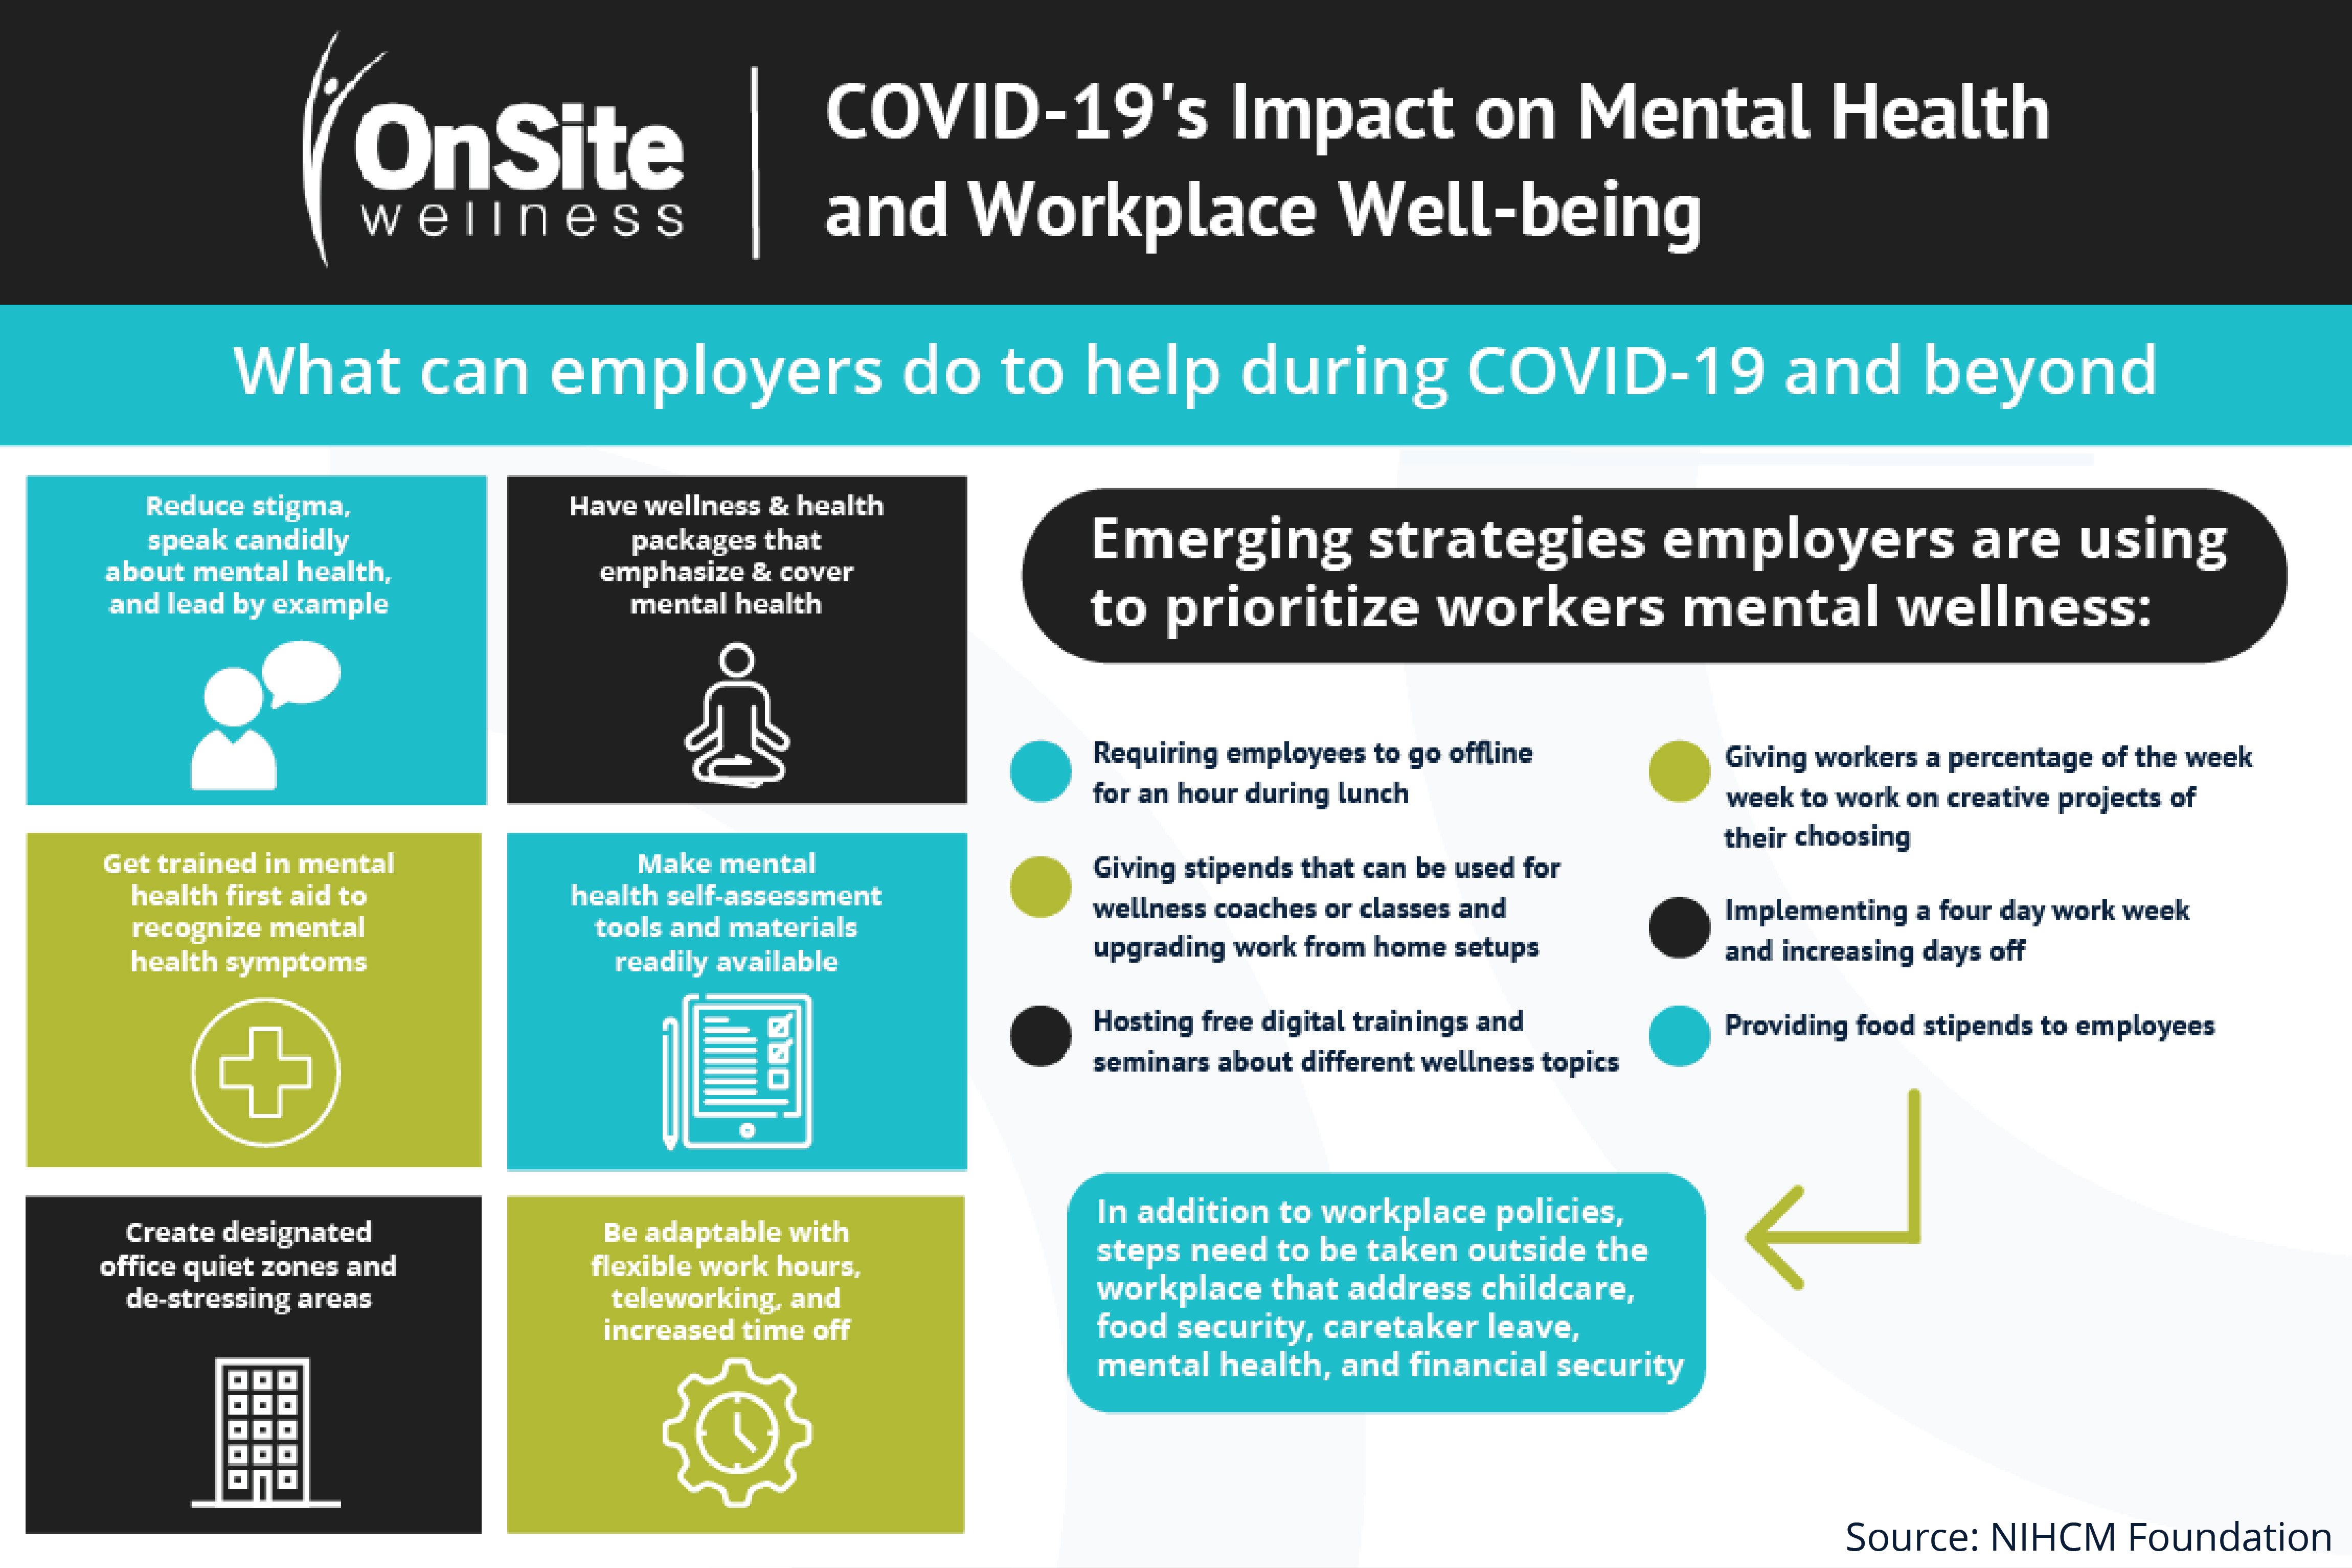 COVID-19 & Workplace Well-being: How Employers Can Help